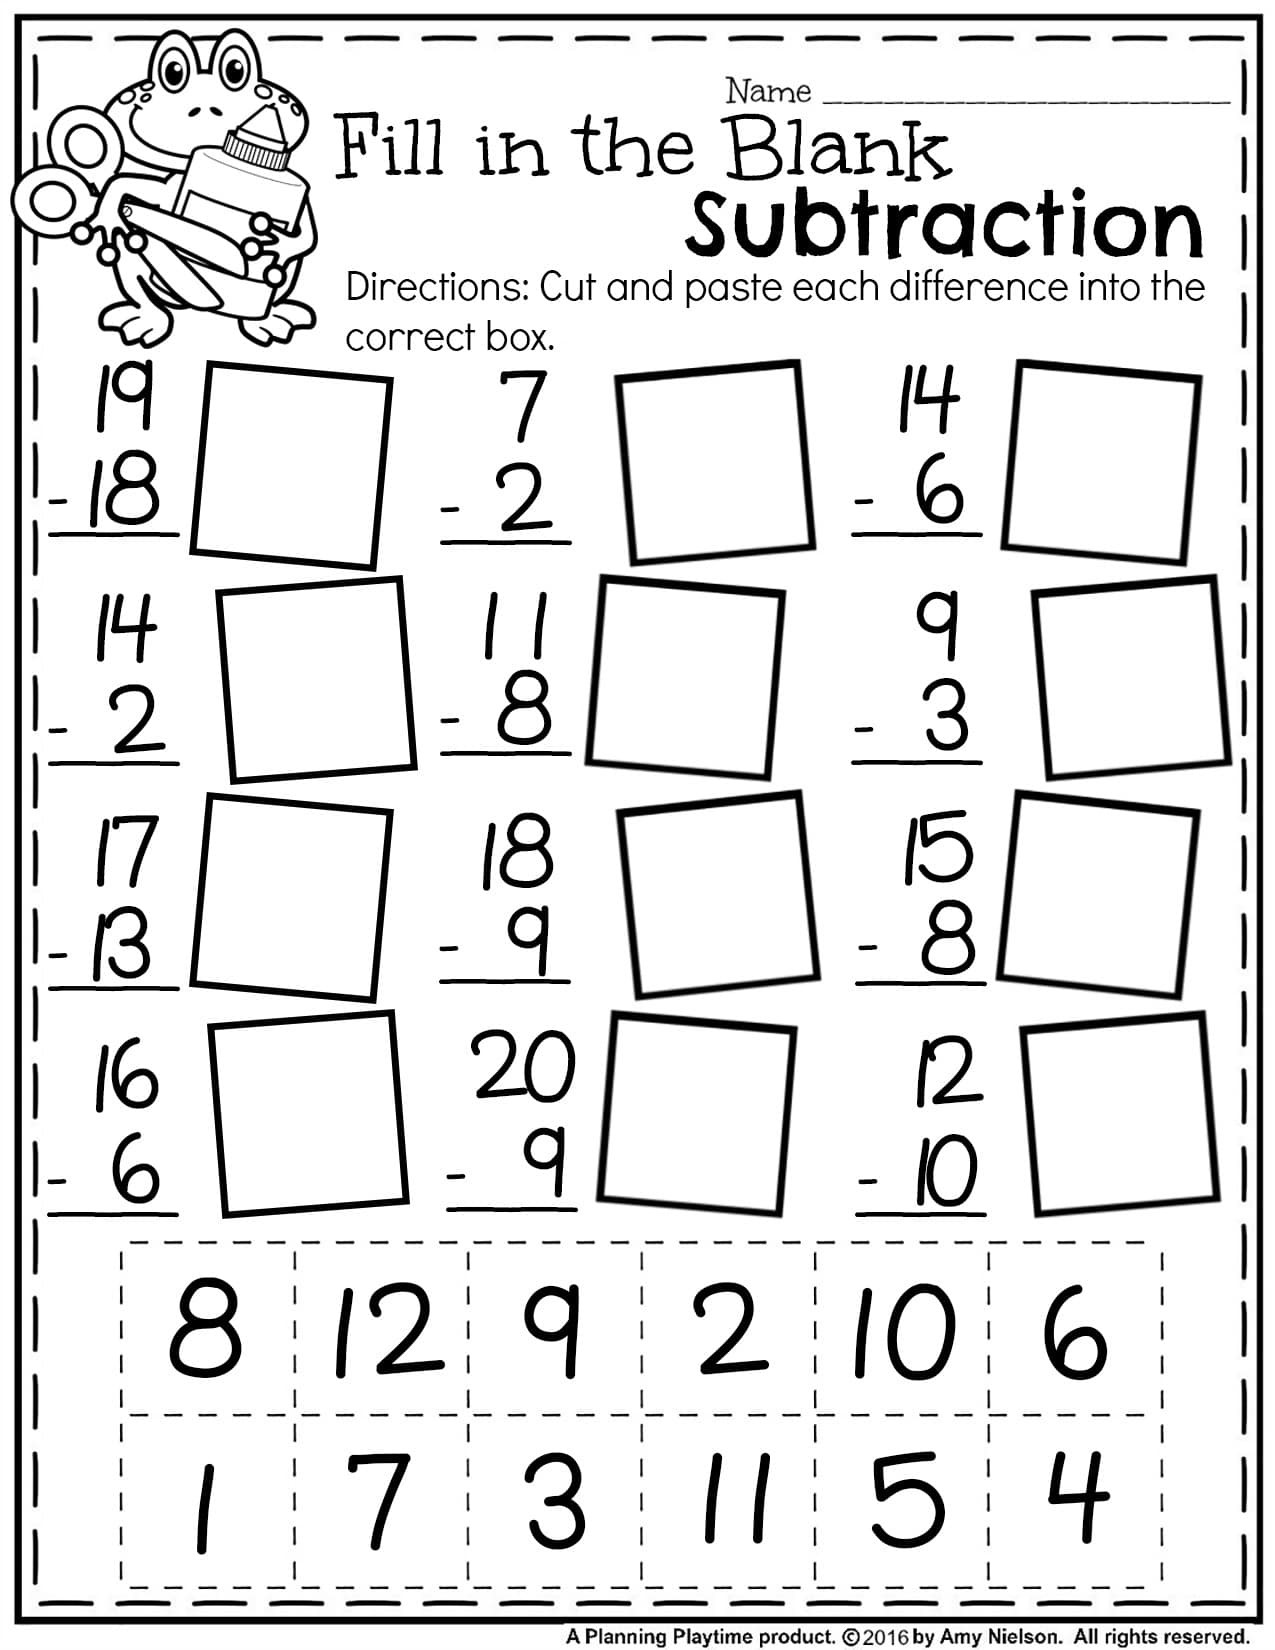 Subtraction Worksheets 1st Grade Math Worksheet Sheets for First Grade Marvelous Find the 1st